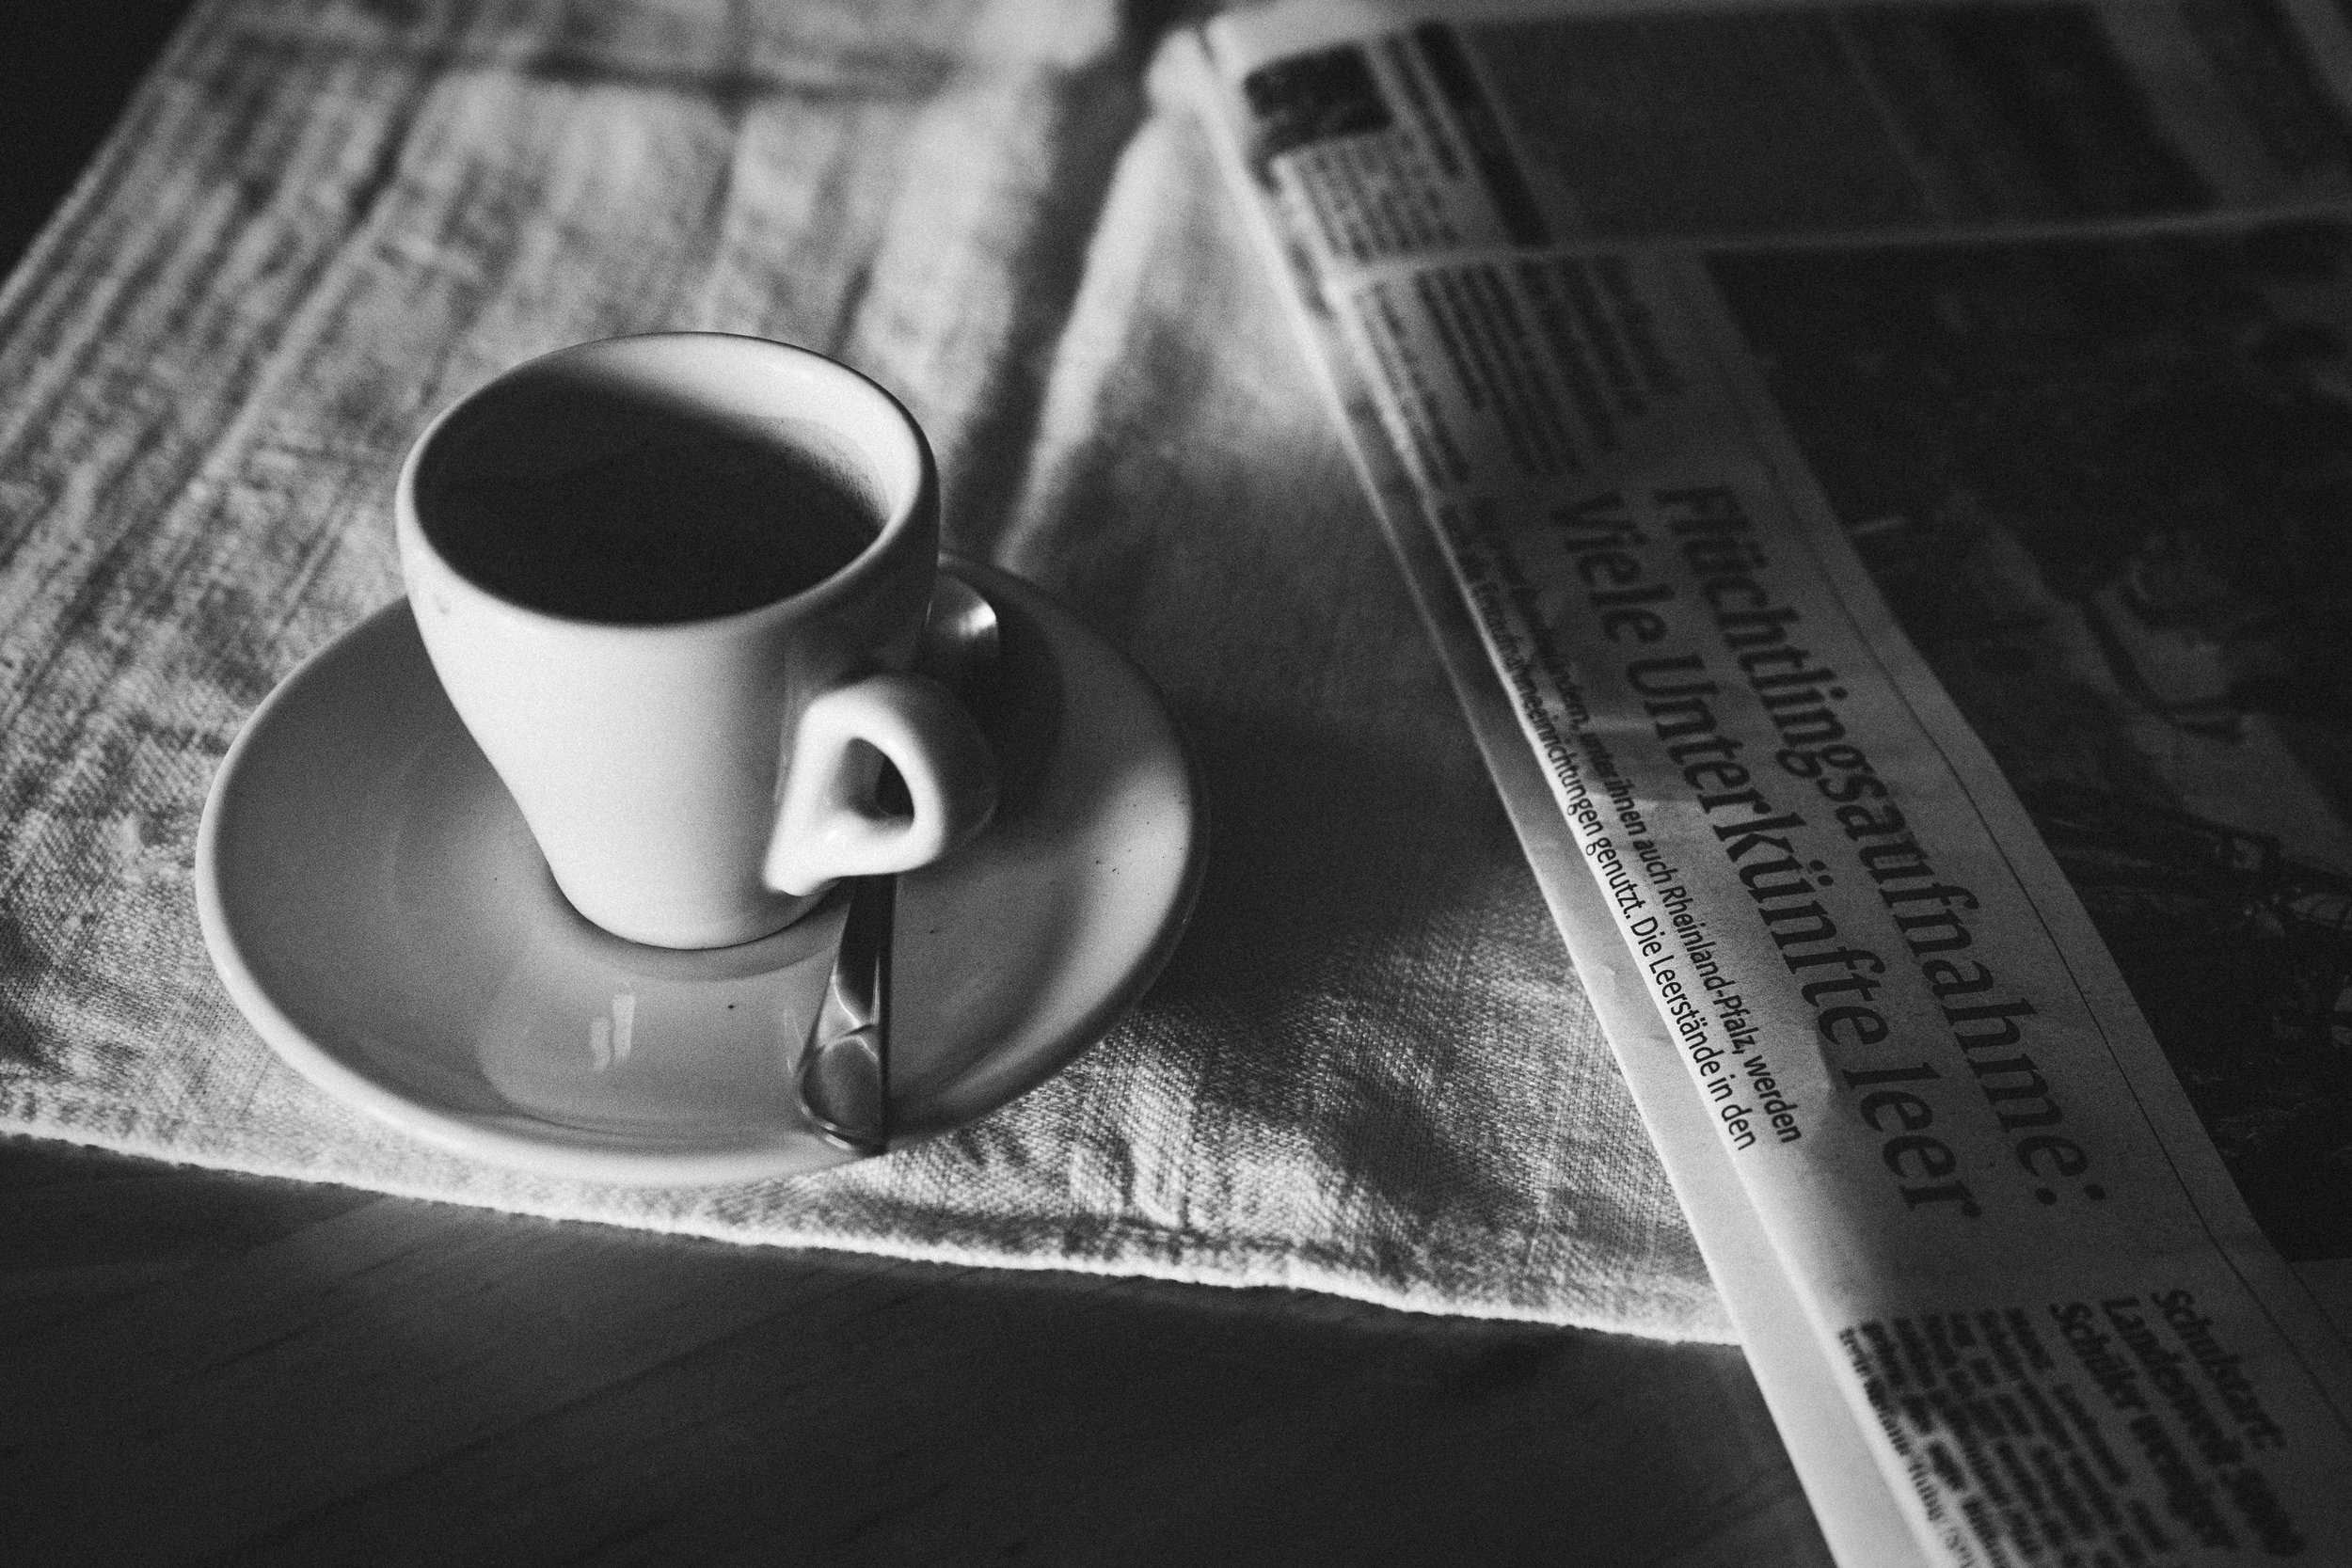 An espresso sits on a table next to a newspaper